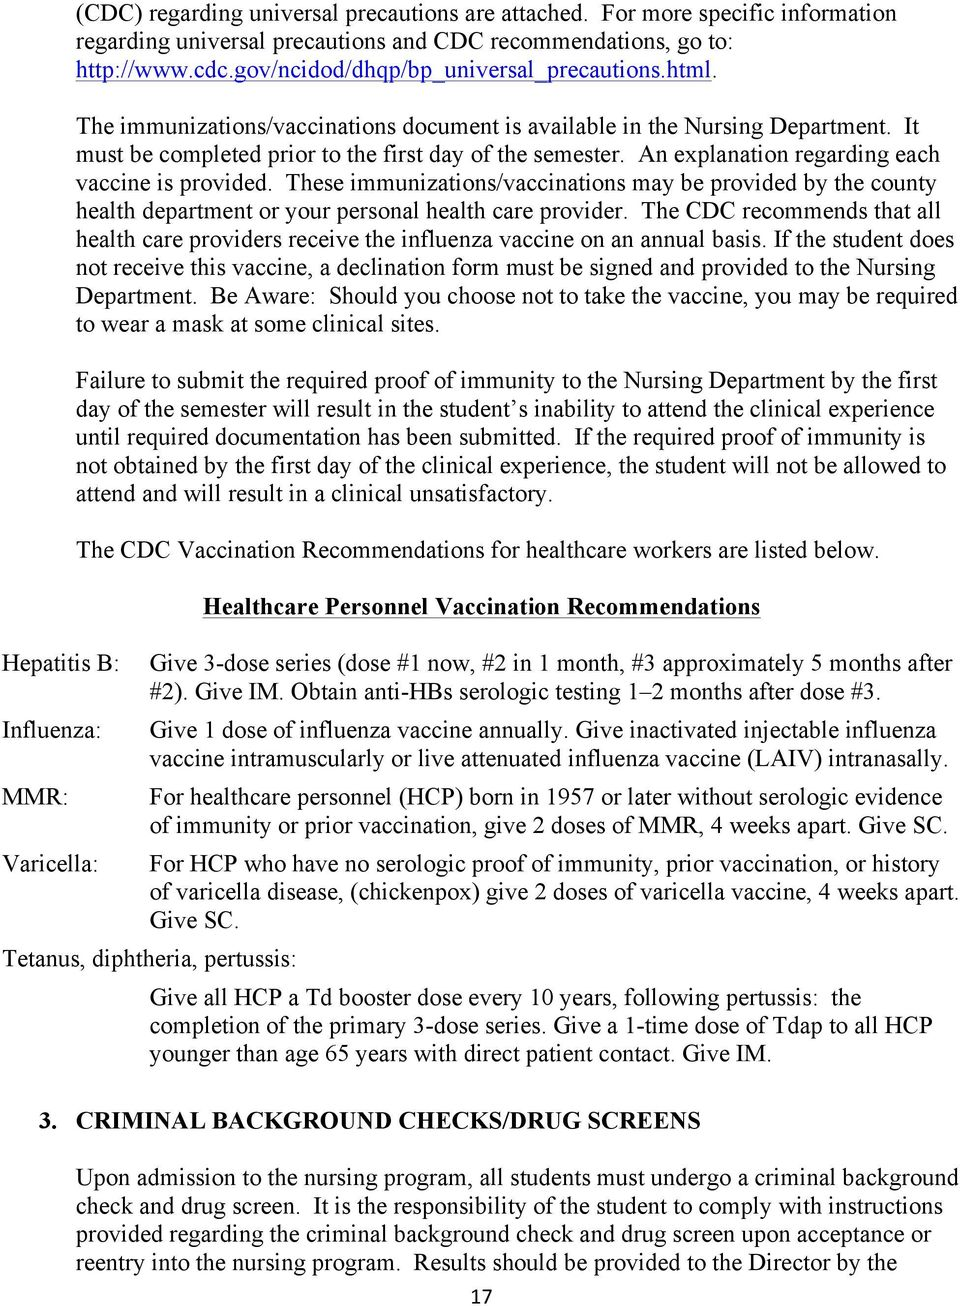 An explanation regarding each vaccine is provided. These immunizations/vaccinations may be provided by the county health department or your personal health care provider.